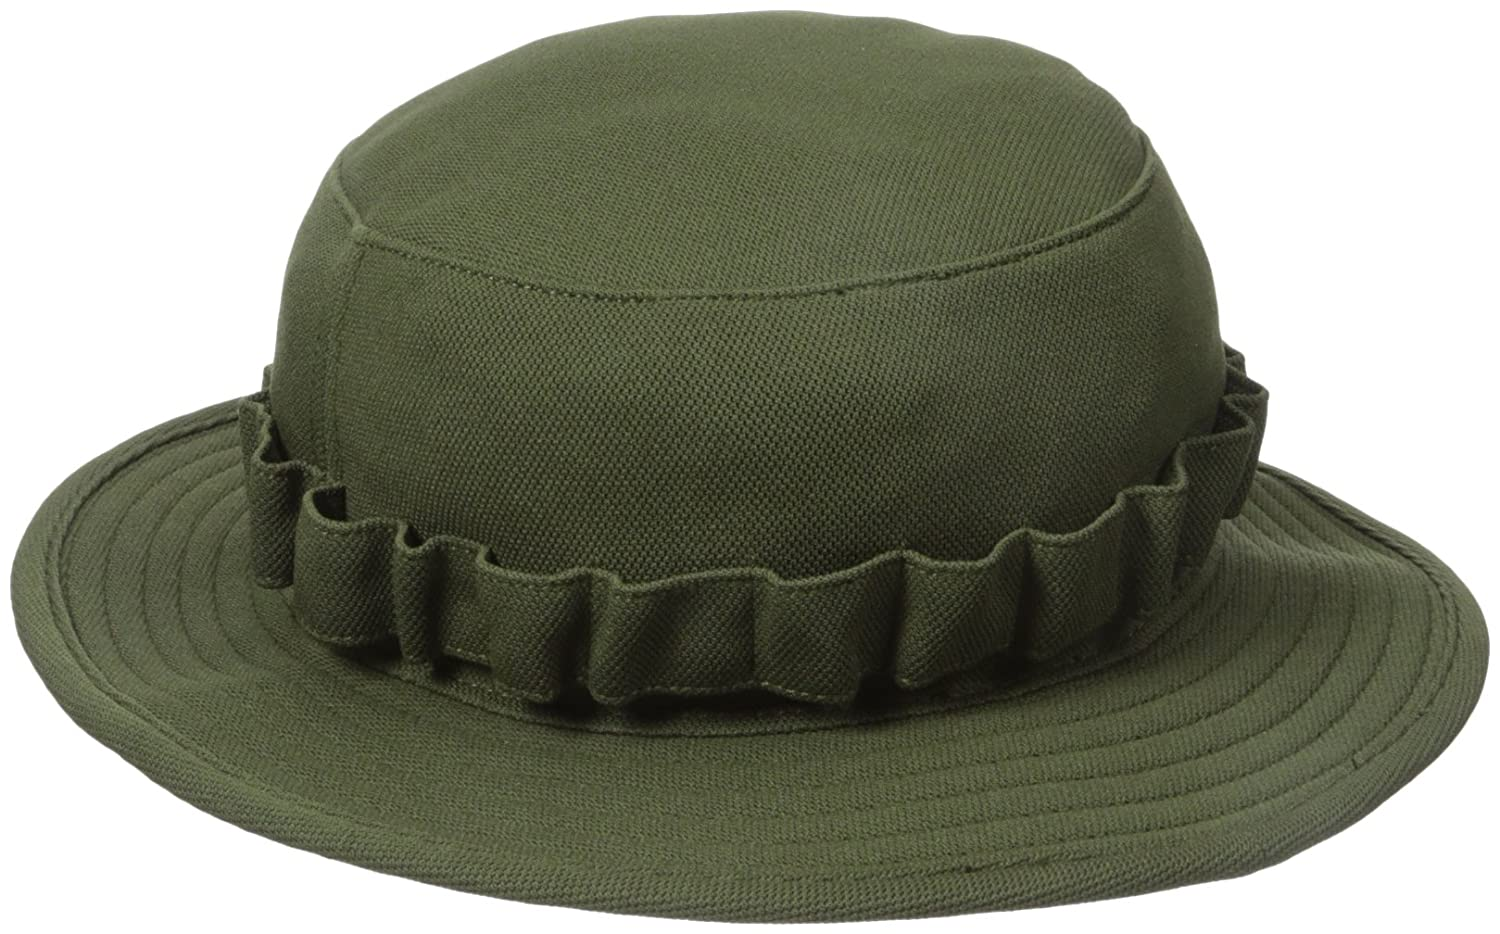 b3c1c596ed7 Amazon.com  Under Armour Men s Tactical Bucket Hat